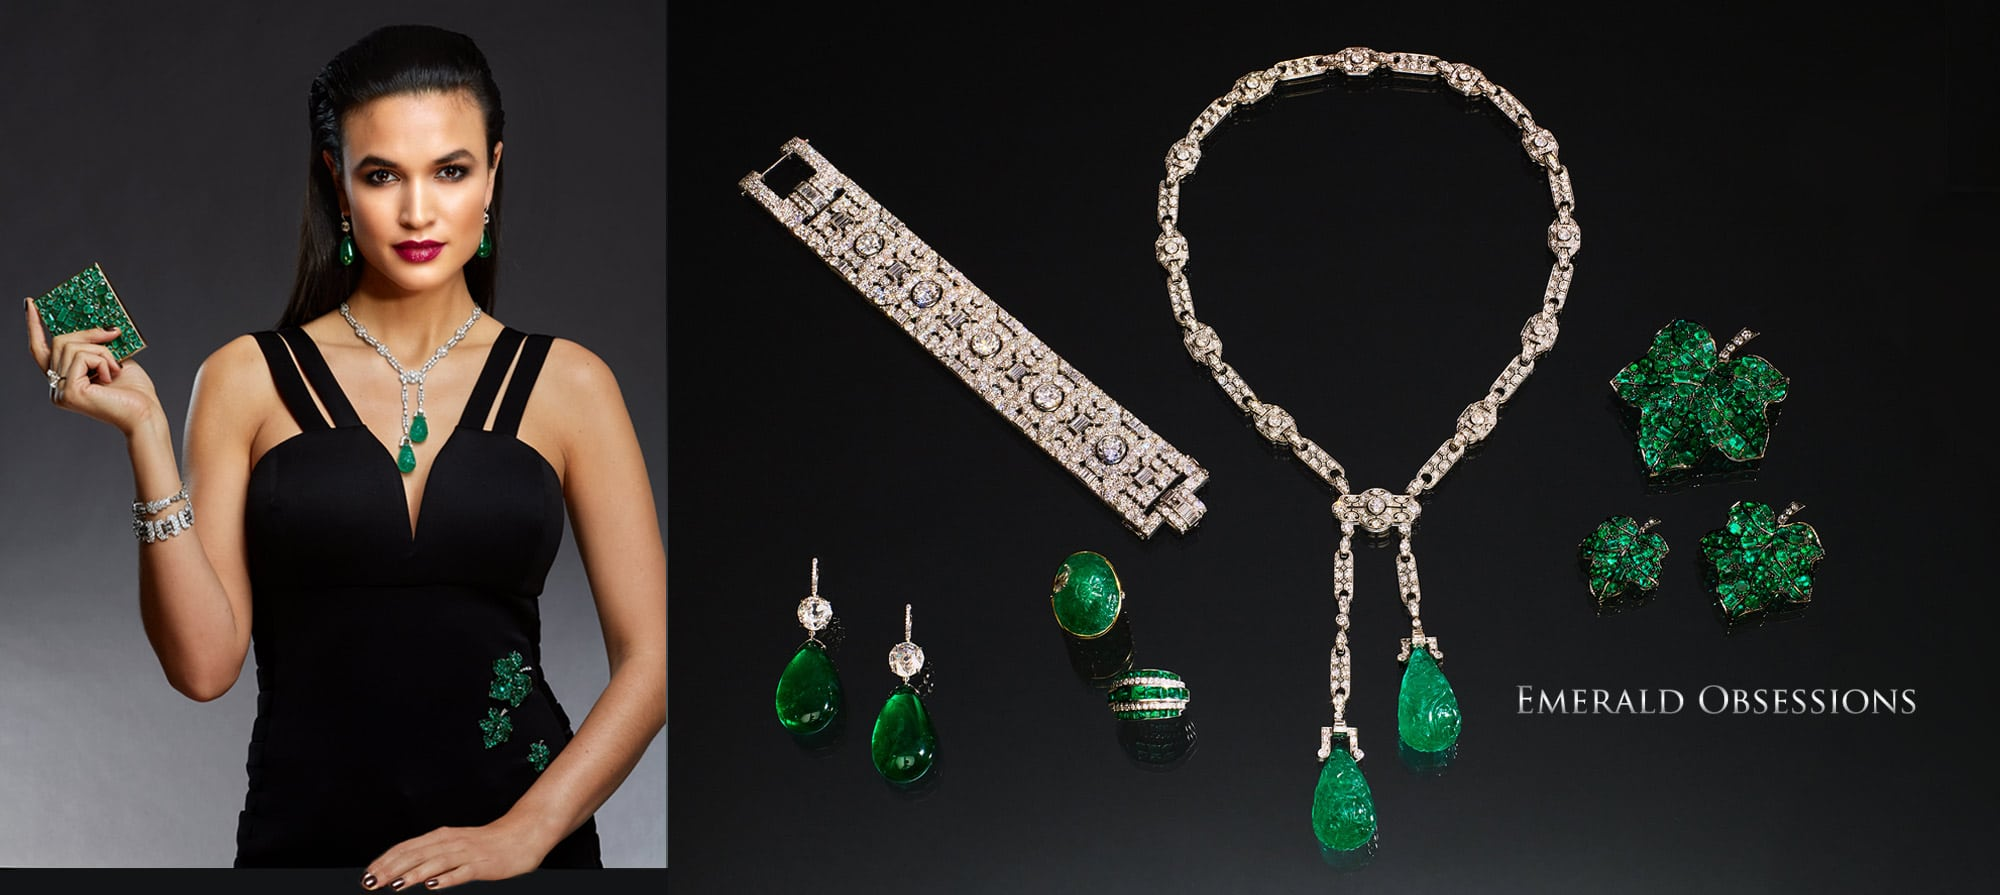 Emerald-cut 10 carat Diamond Ring, Emerald Compact by Suzanne Belperron. Circa 1935, Emerald and Diamond Pendent Earrings, Art Deco Carved Emerald and Diamond Necklace, Set of three Emerald Leaf Brooches by Pat Saling, Art Deco Diamond Bracelet by Chaumet, French Art Deco Diamond Bracelet, Emerald & Diamond Ring by Rene Boivin. Circa 1950, Carved Emerald and Diamond Ring, French Diamond Bracelet. Circa 1920